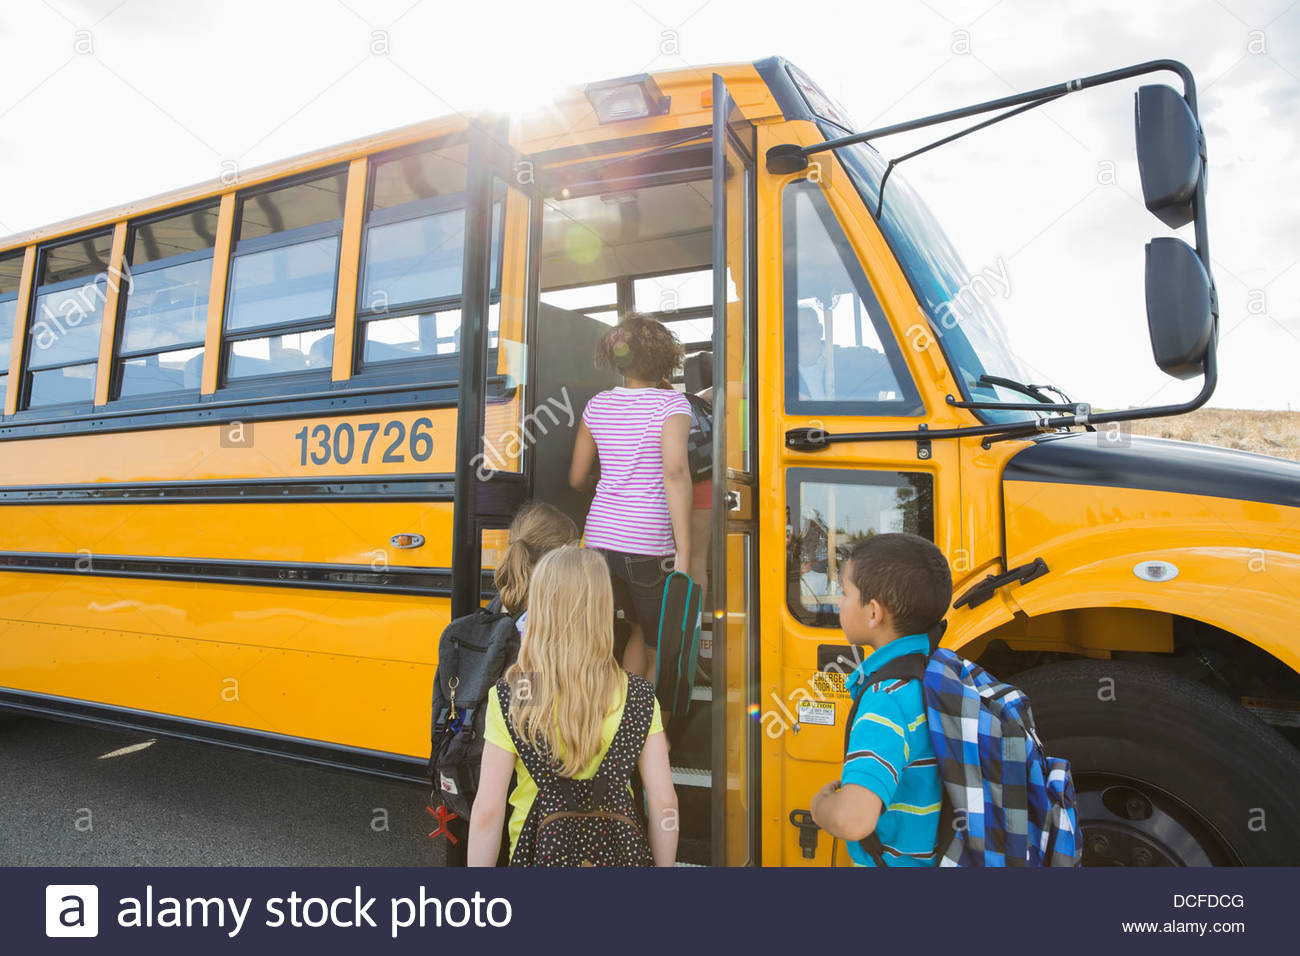 Schoolchildren boarding school bus going for field trip - Stock Image